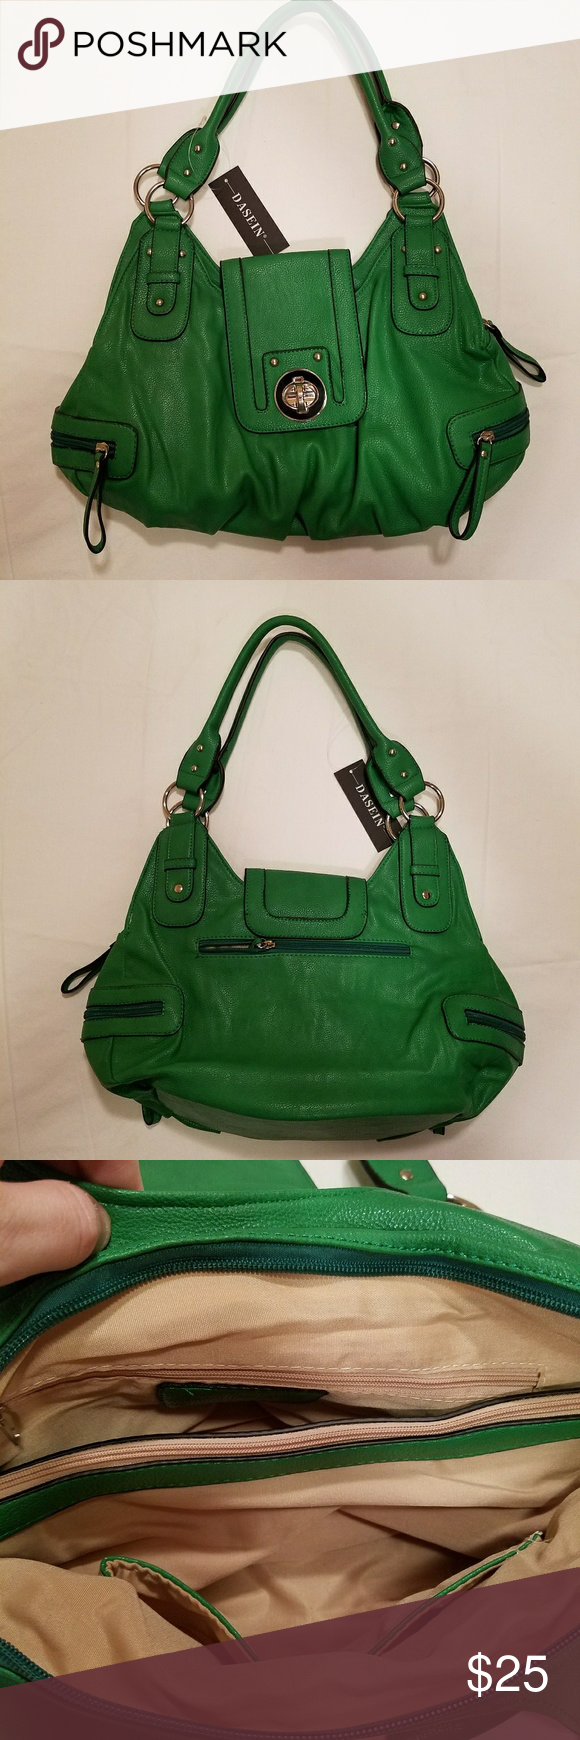 Green Purse New with tags. Bags Shoulder Bags